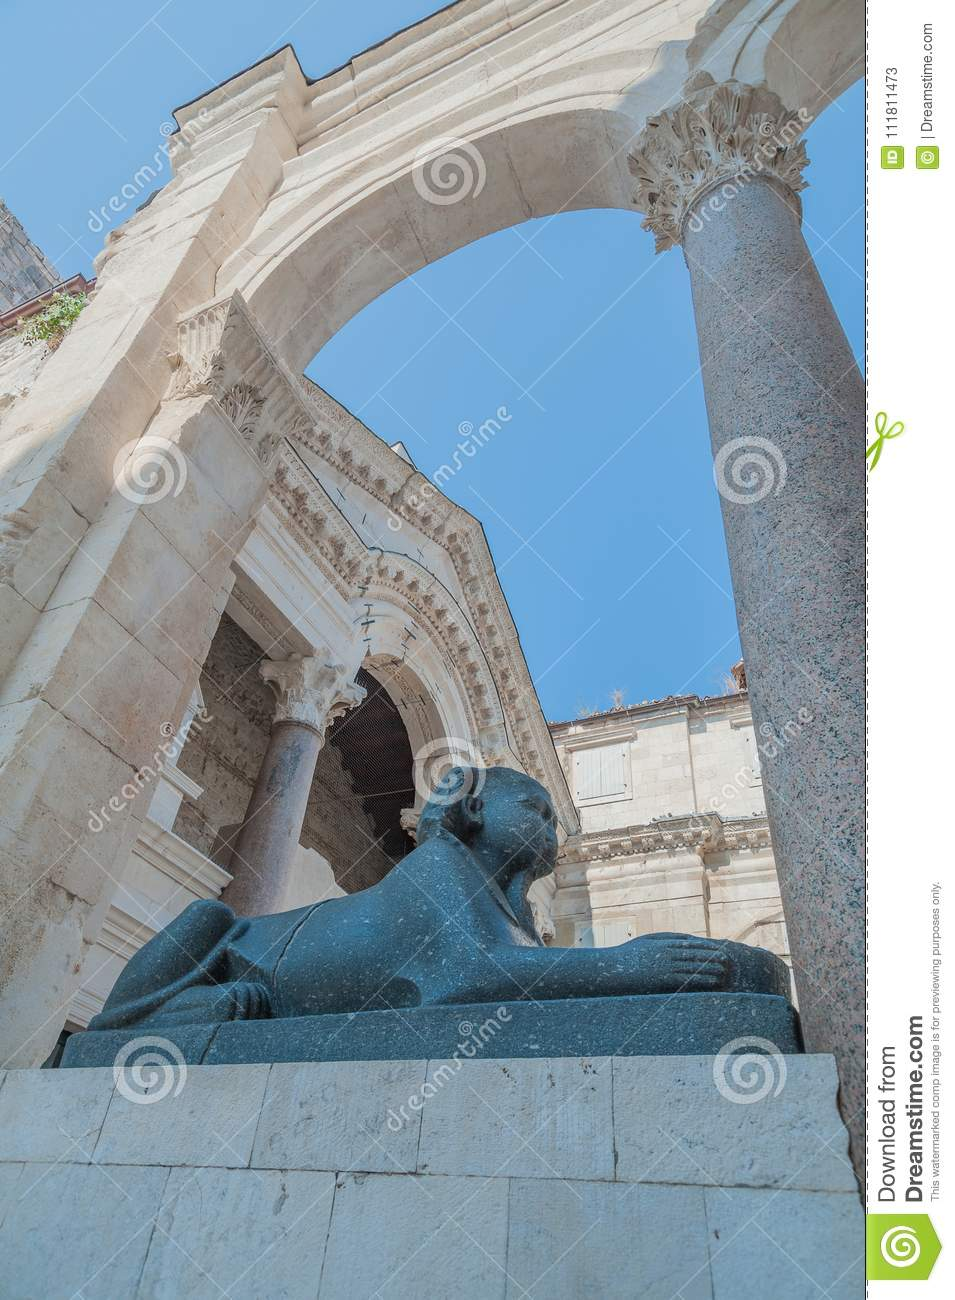 Original Egyptian sphinx - one is on Peristil square, the other in front of Jupiter`s temple or St. John`s church. They were broug